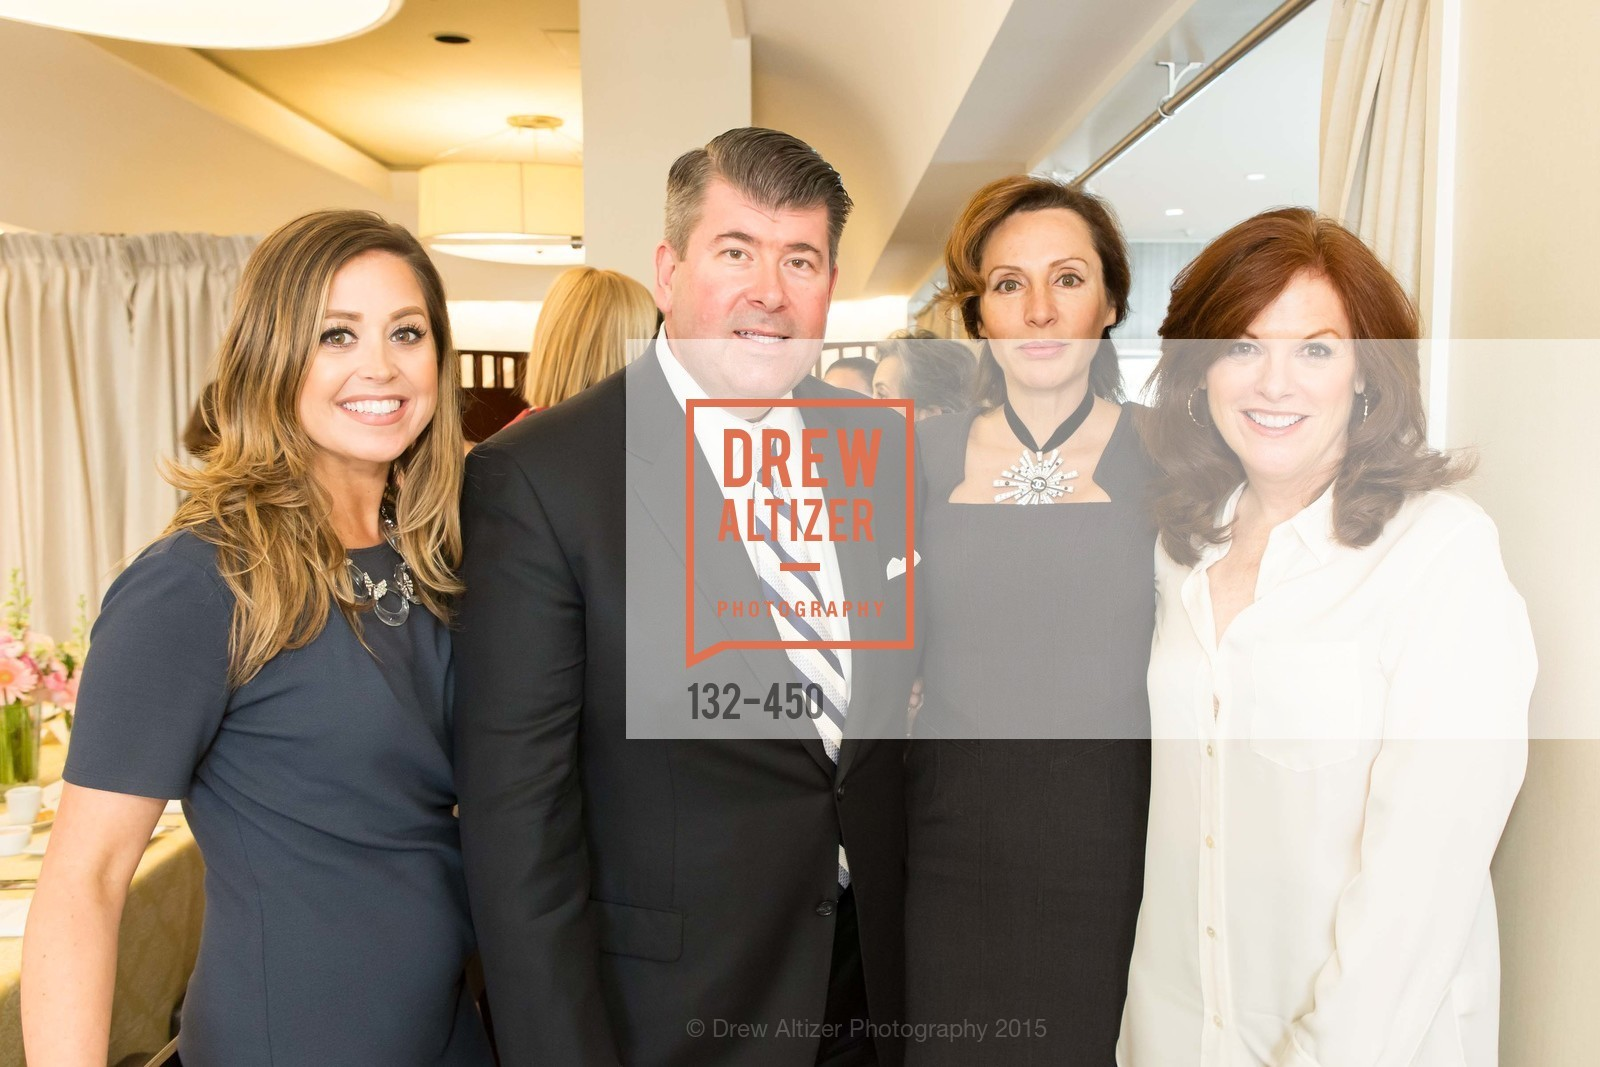 Shannon Blunden, Alan Morrell, Clara Shayevich, Theresa Spirz, Lela Rose Book Signing and Luncheon at Neiman Marcus, Neiman Marcus, November 5th, 2015,Drew Altizer, Drew Altizer Photography, full-service agency, private events, San Francisco photographer, photographer california